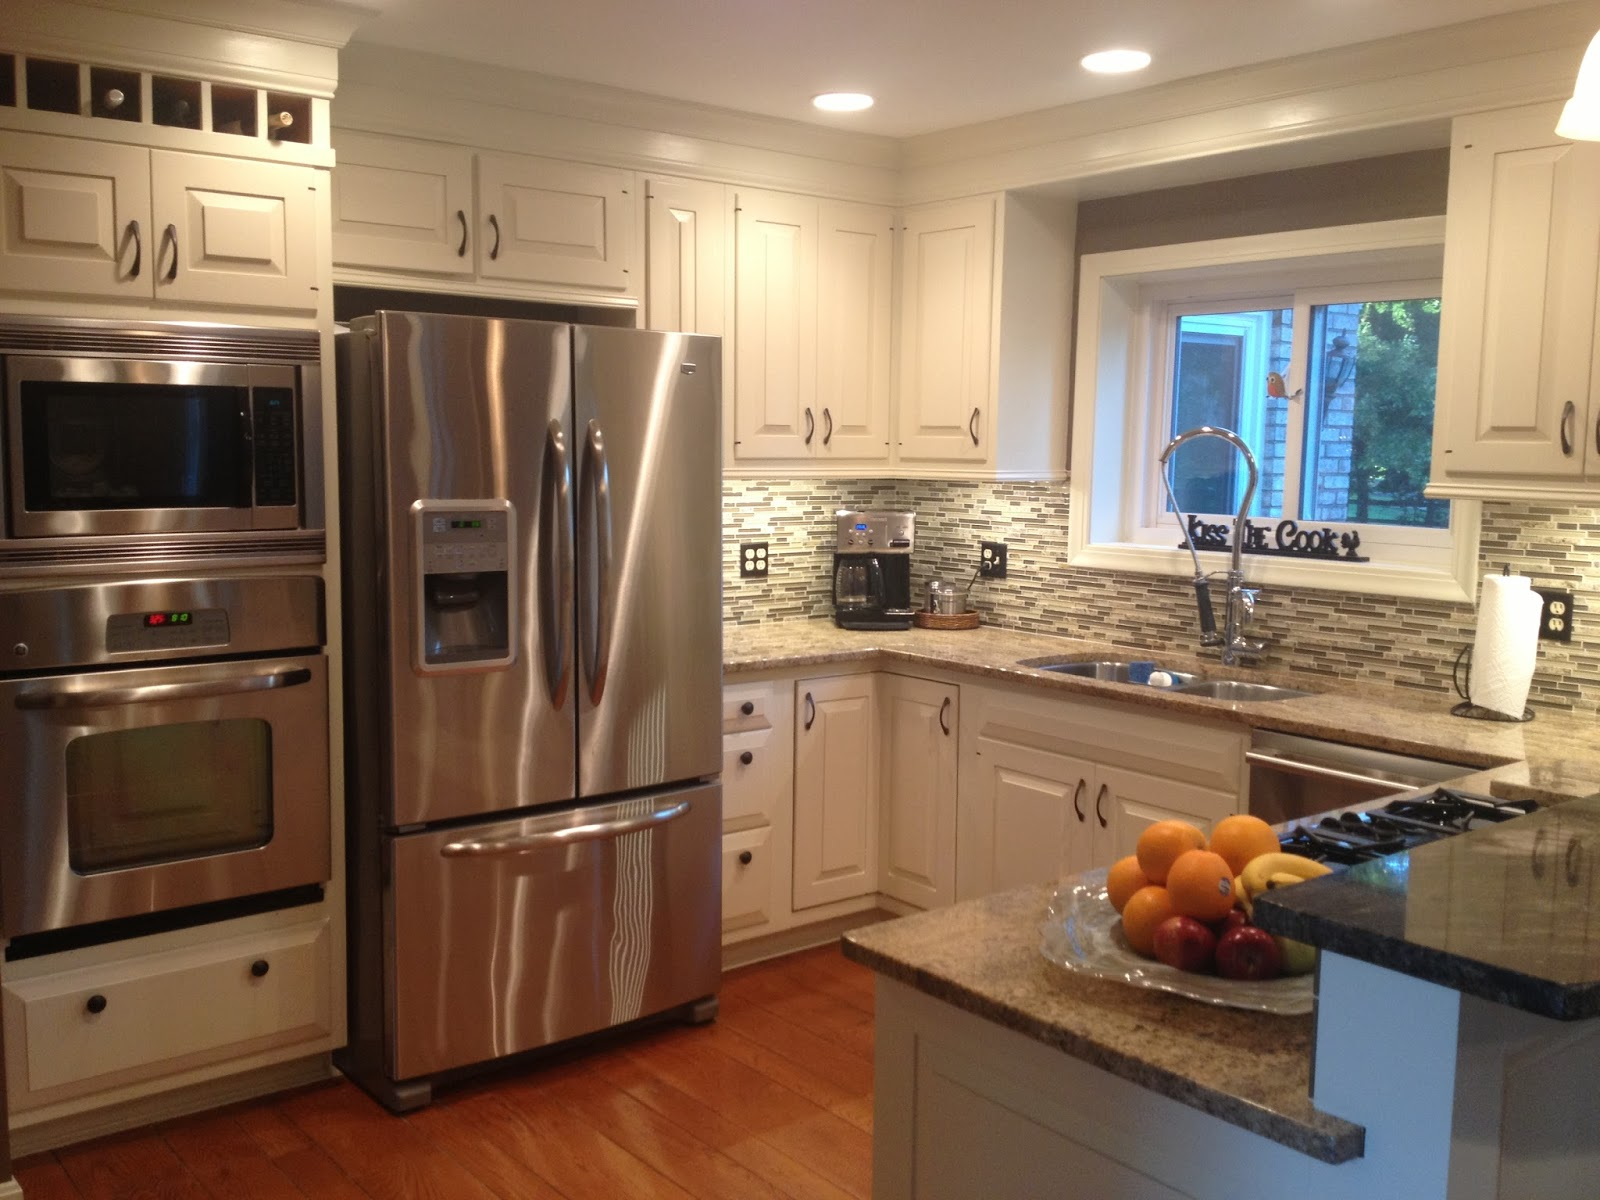 Four seasons style the new kitchen remodel on a budget for Kitchen remodels on a budget photos